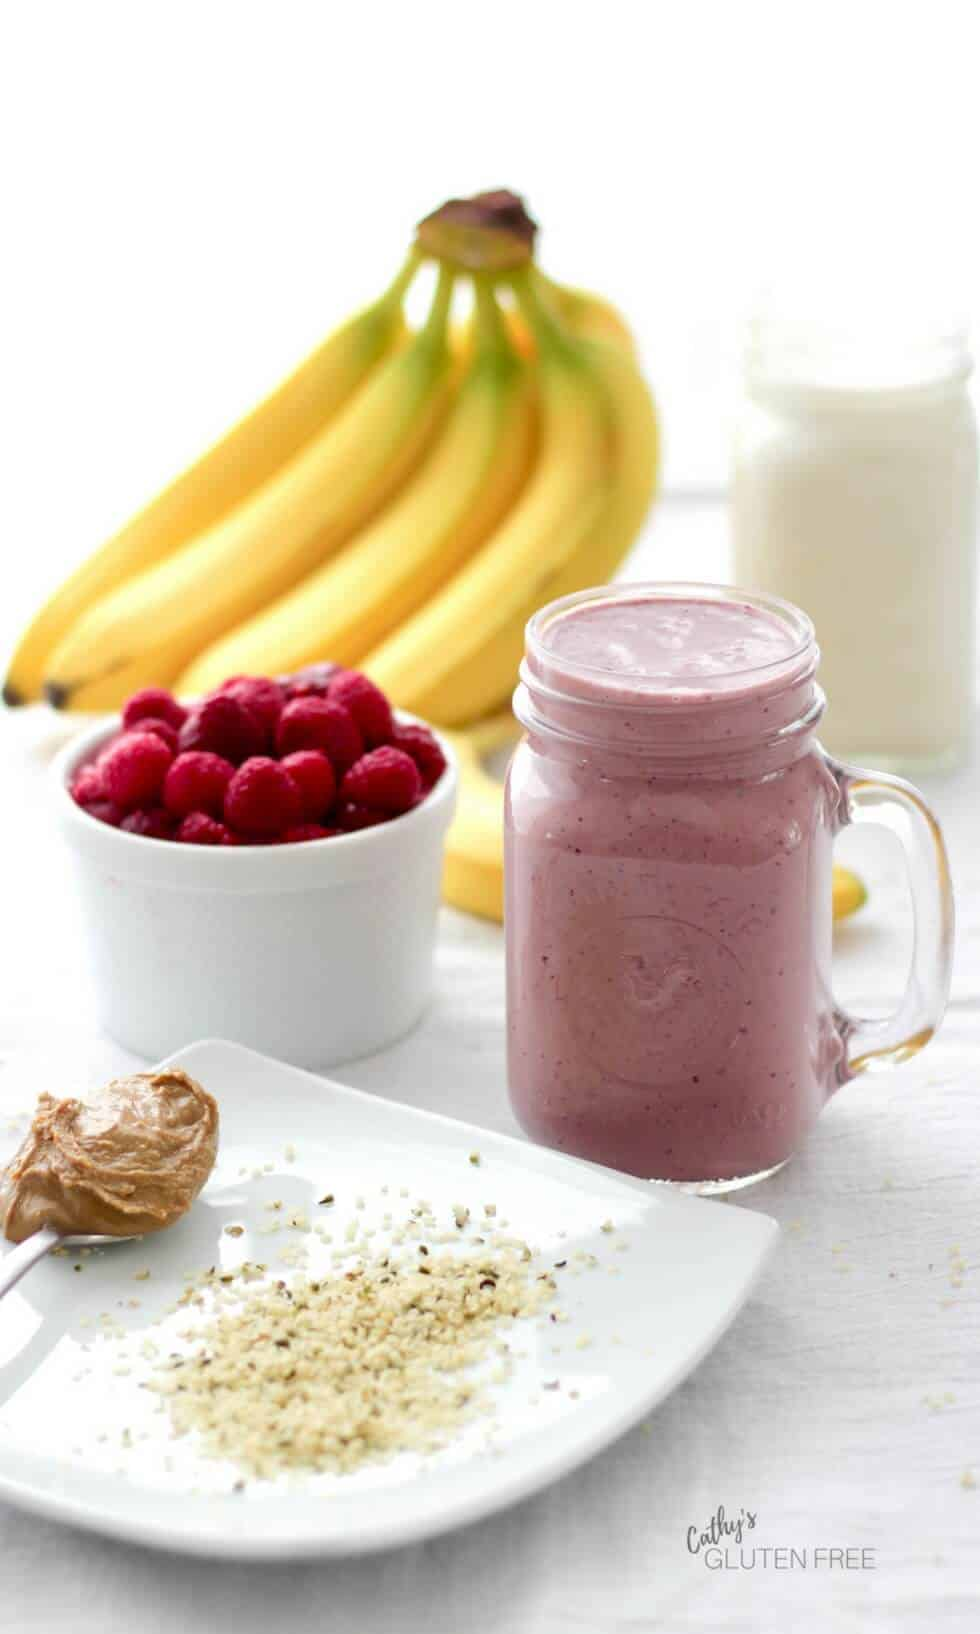 Cherry Berry Smoothie includes the goodness of banana, sunflower seed butter, and hemp.